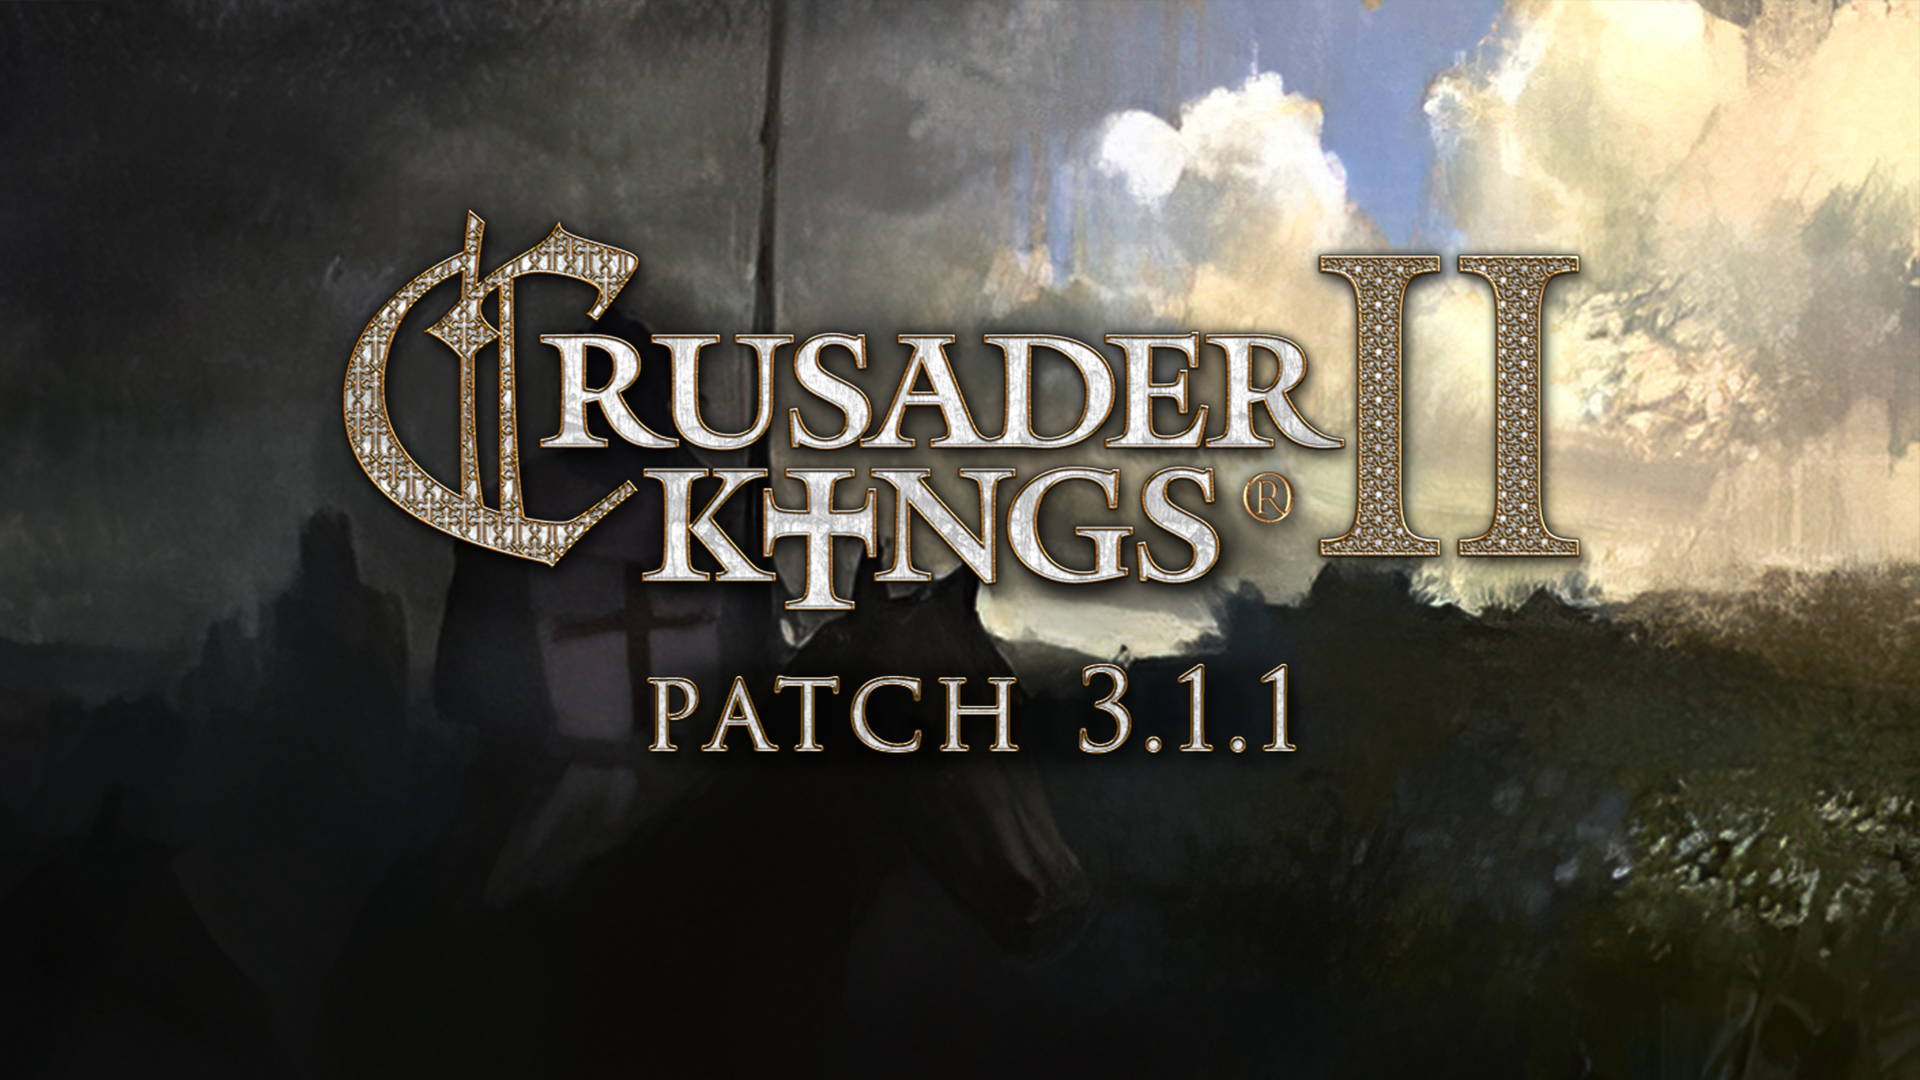 Crusader Kings II update for May 16, 2019 · Patch 3 1 1 is